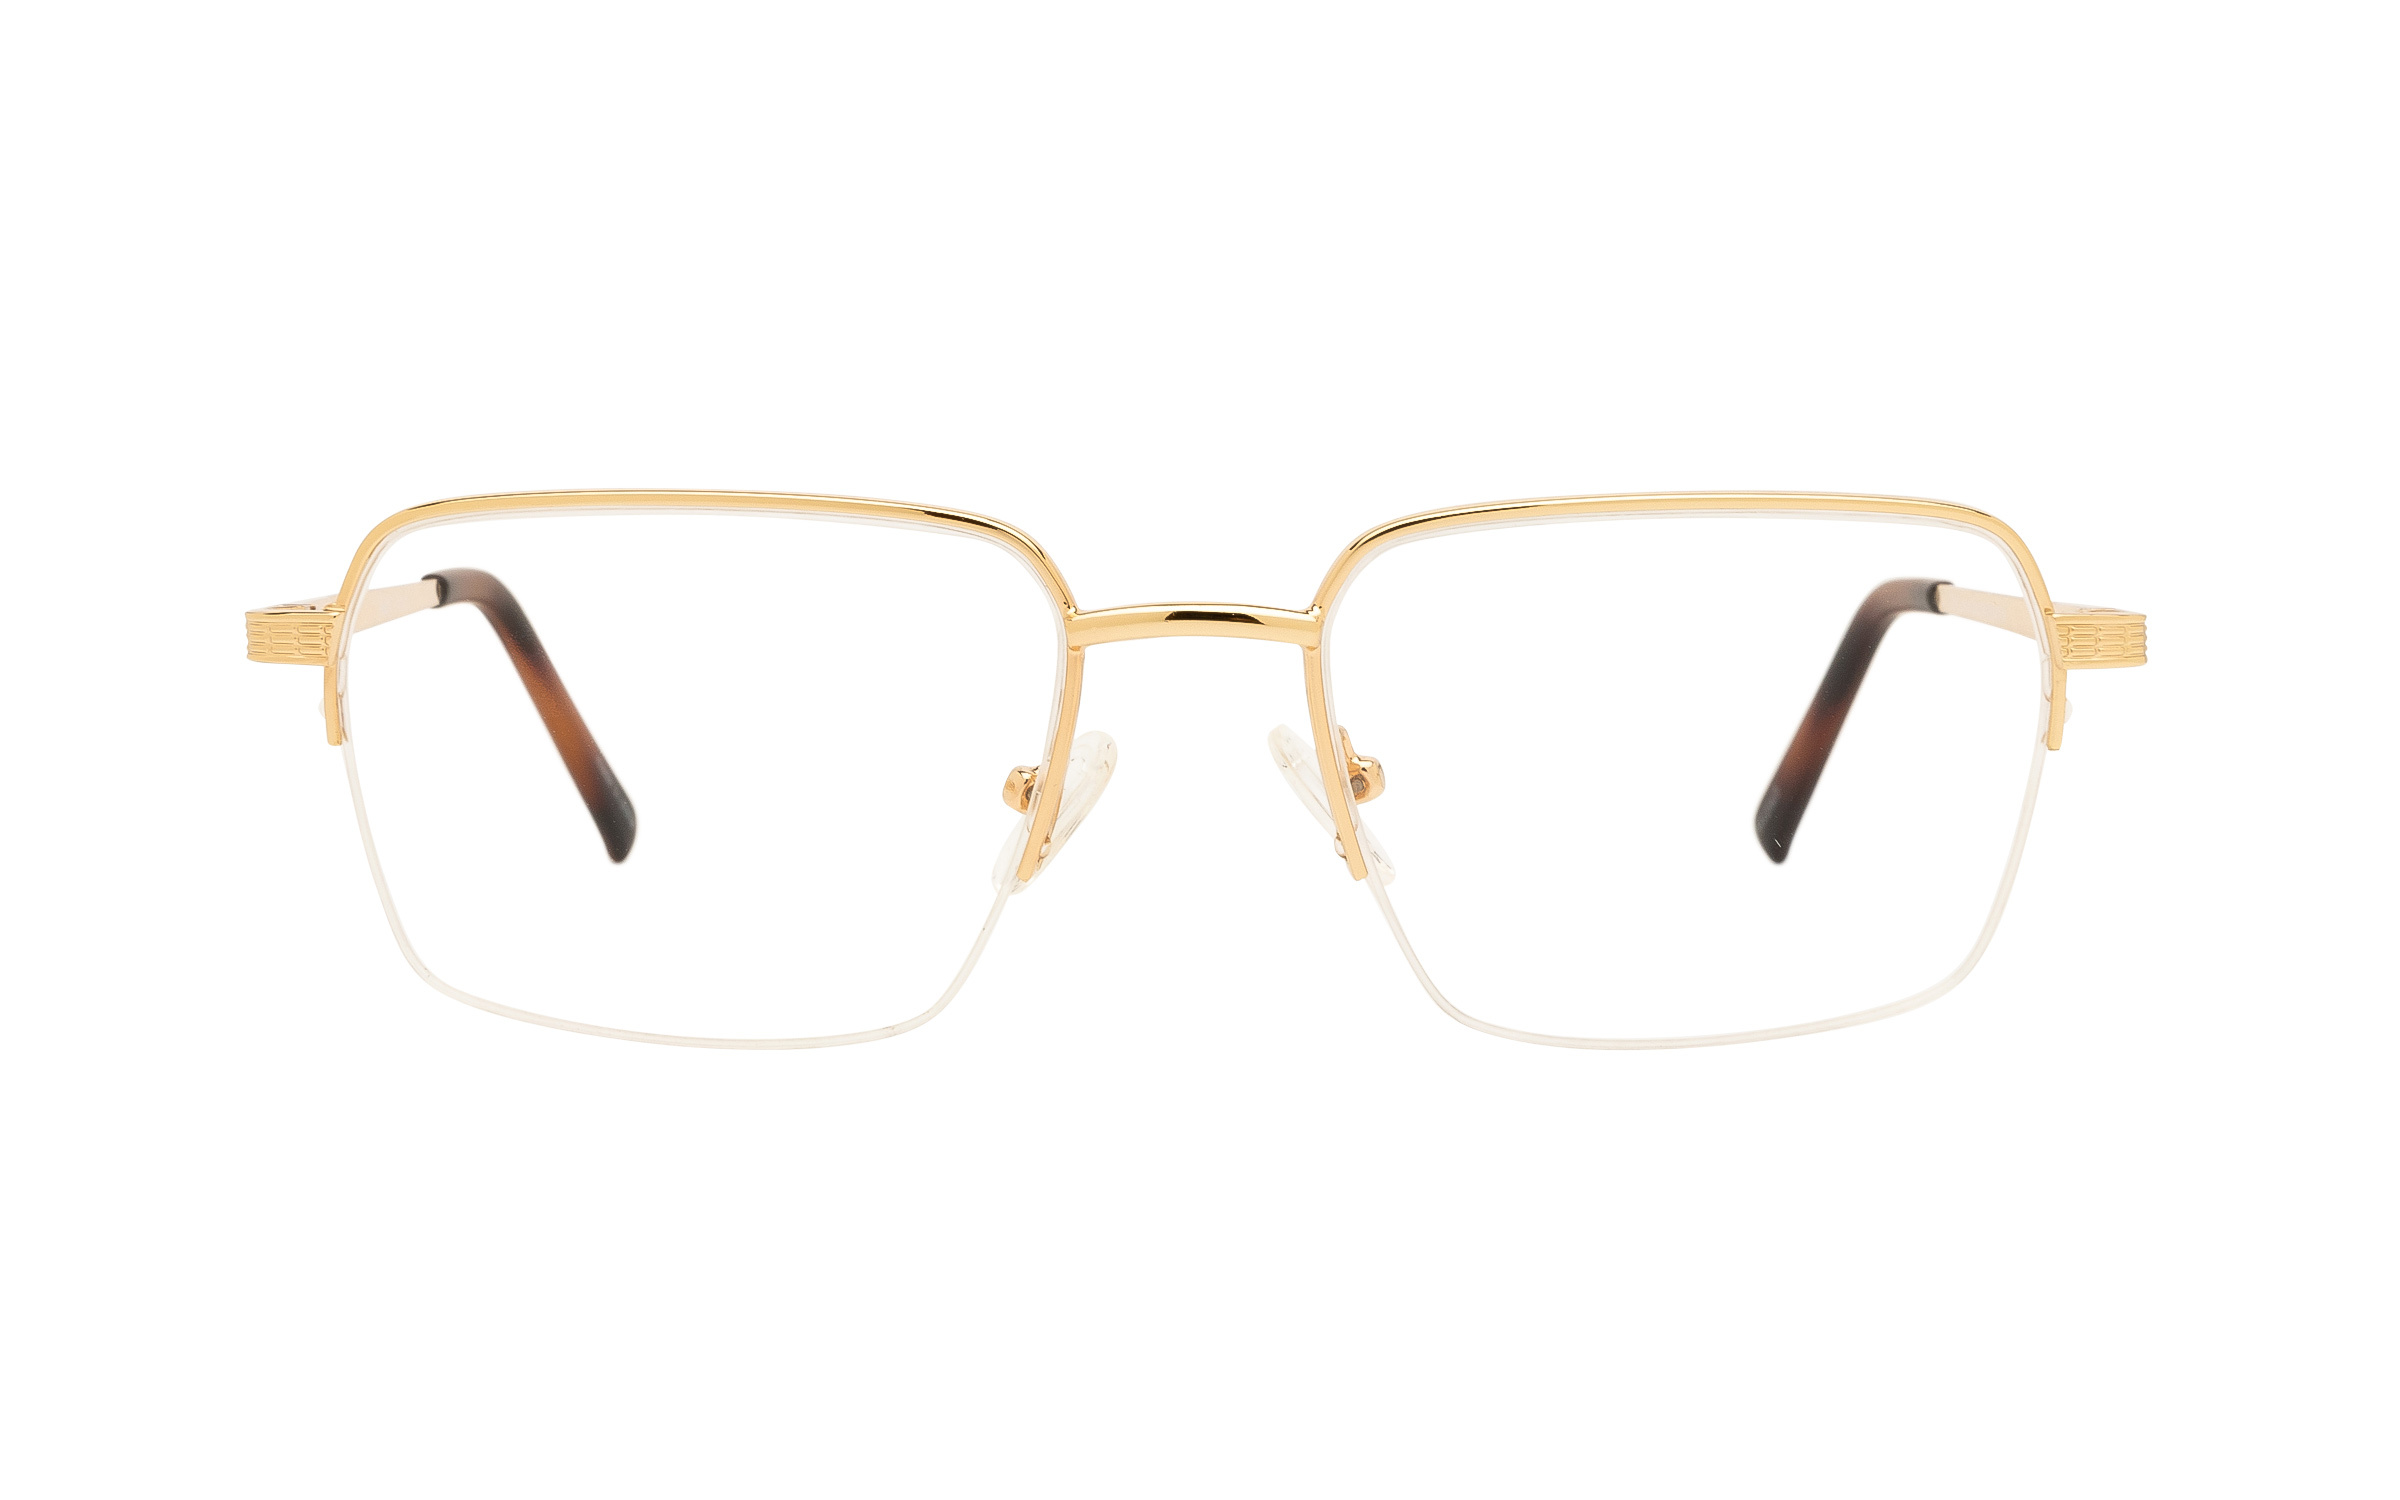 Clearly Basics Saint Lewis CLS078 C03 (54) Eyeglasses and Frame in Gold - Online